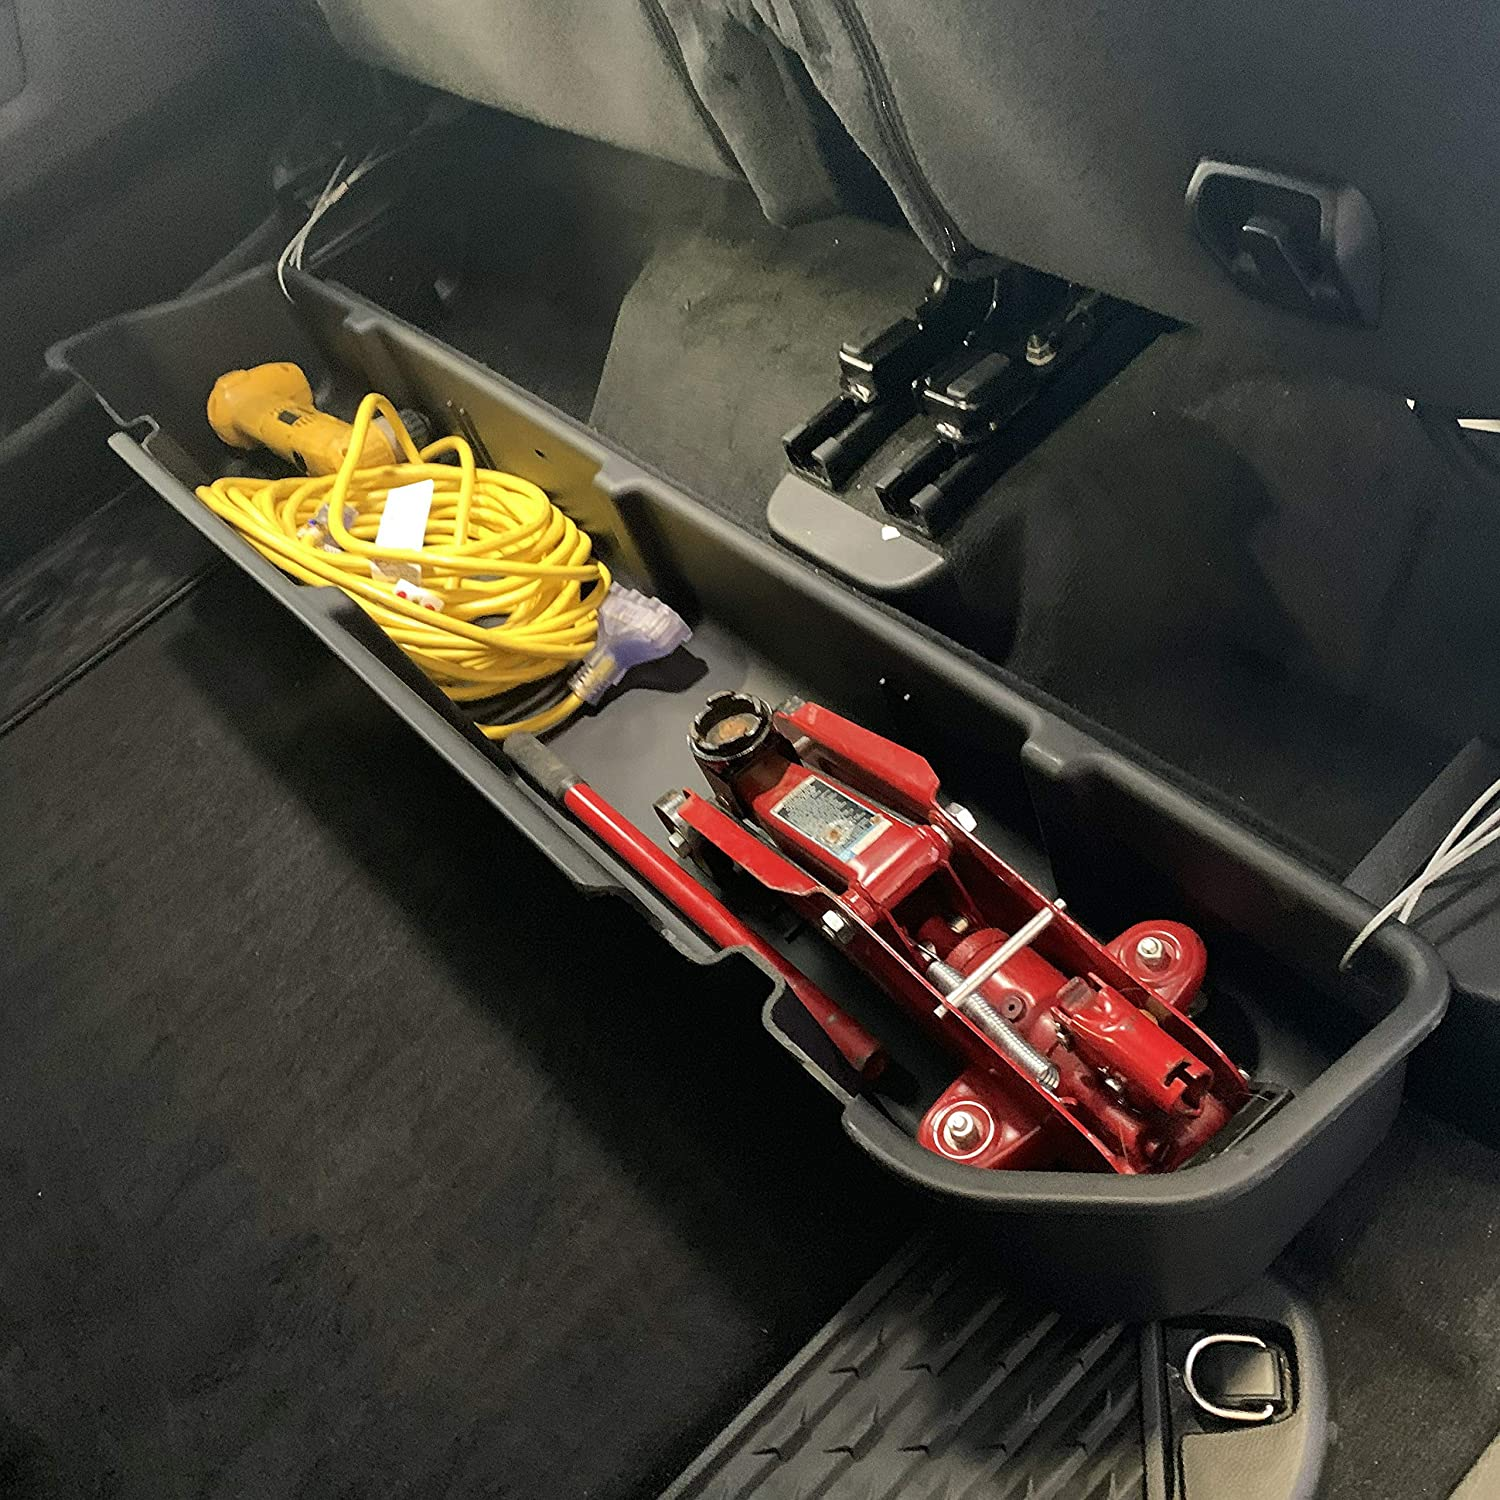 Red Hound Auto Under Seat Storage Box Compatible with Dodge Ram 1500 2019 Crew Cab Heavy Duty Underseat Container System for Crew Cab Only